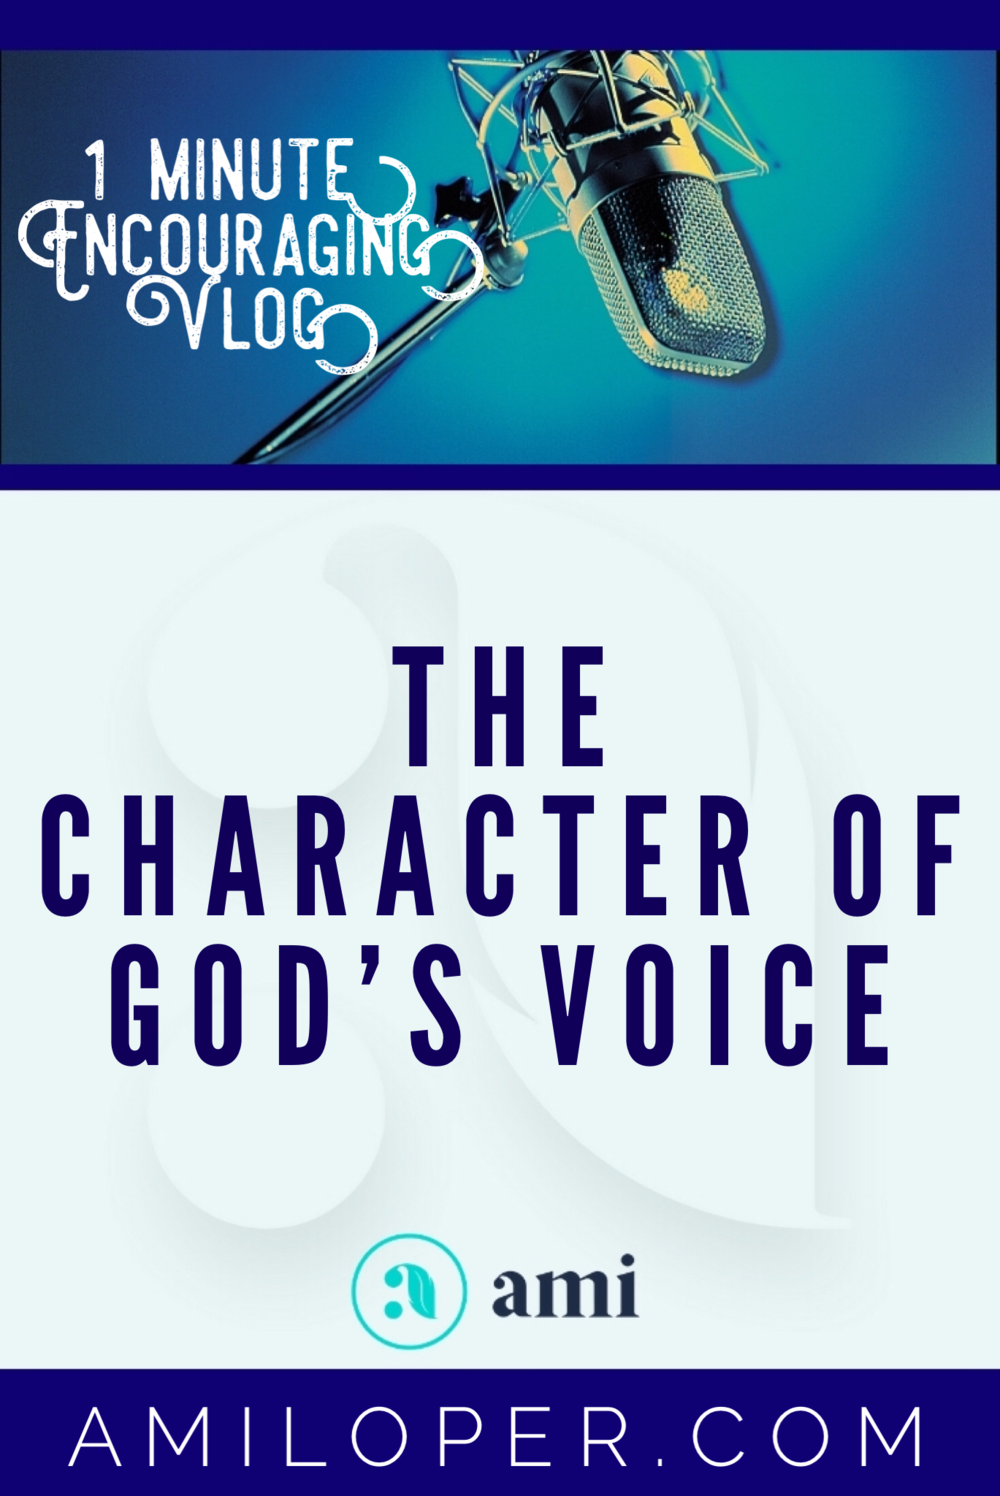 When you're listening for God's voice, are you making sure you are hearing accurately by keeping these basic safeguards in place? Knowing God's Word and His character are so important! #prayer #BibleStudy #Vlog